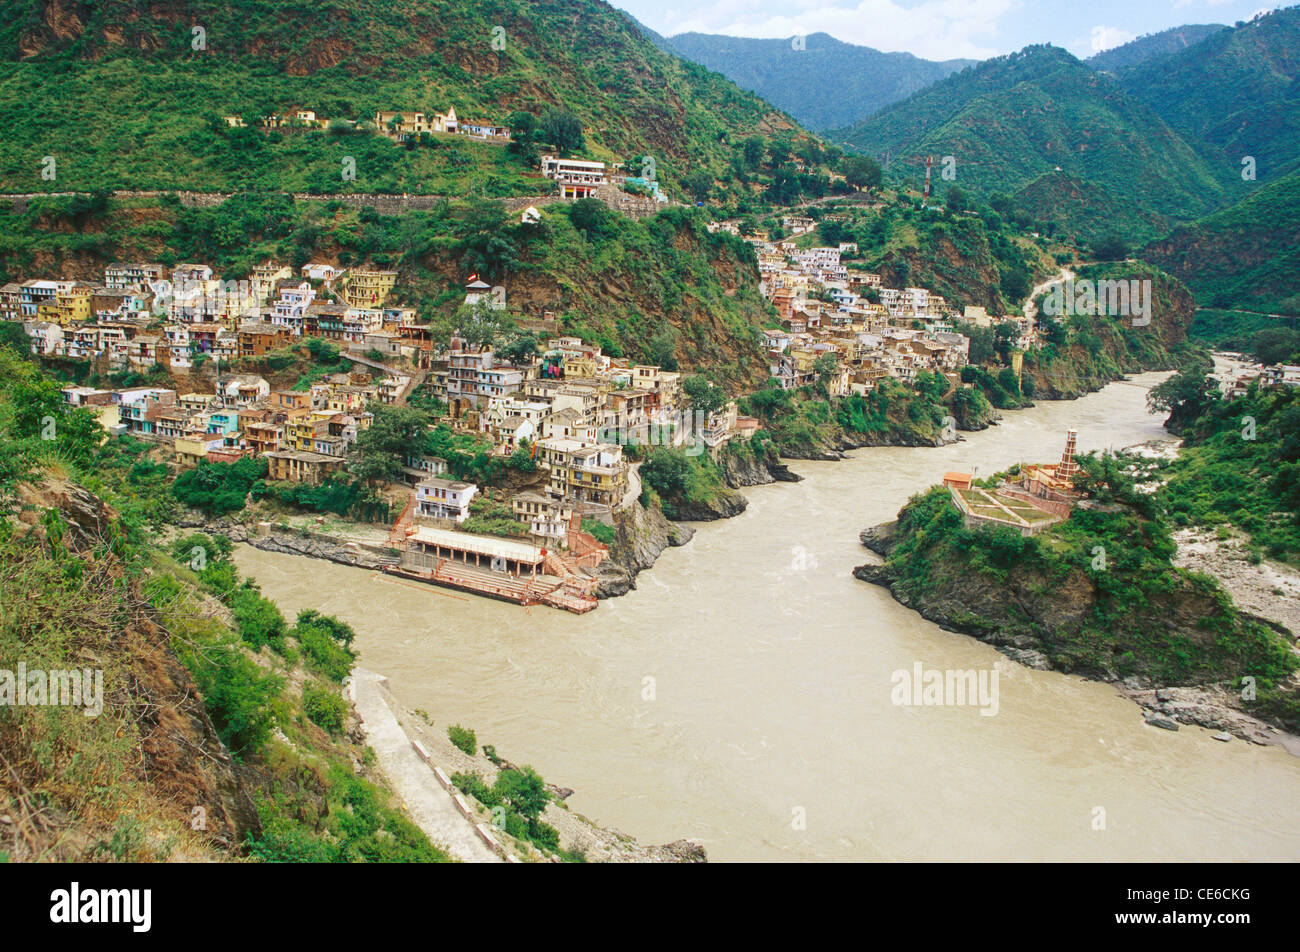 place where alaknanda and bhagirathi meet